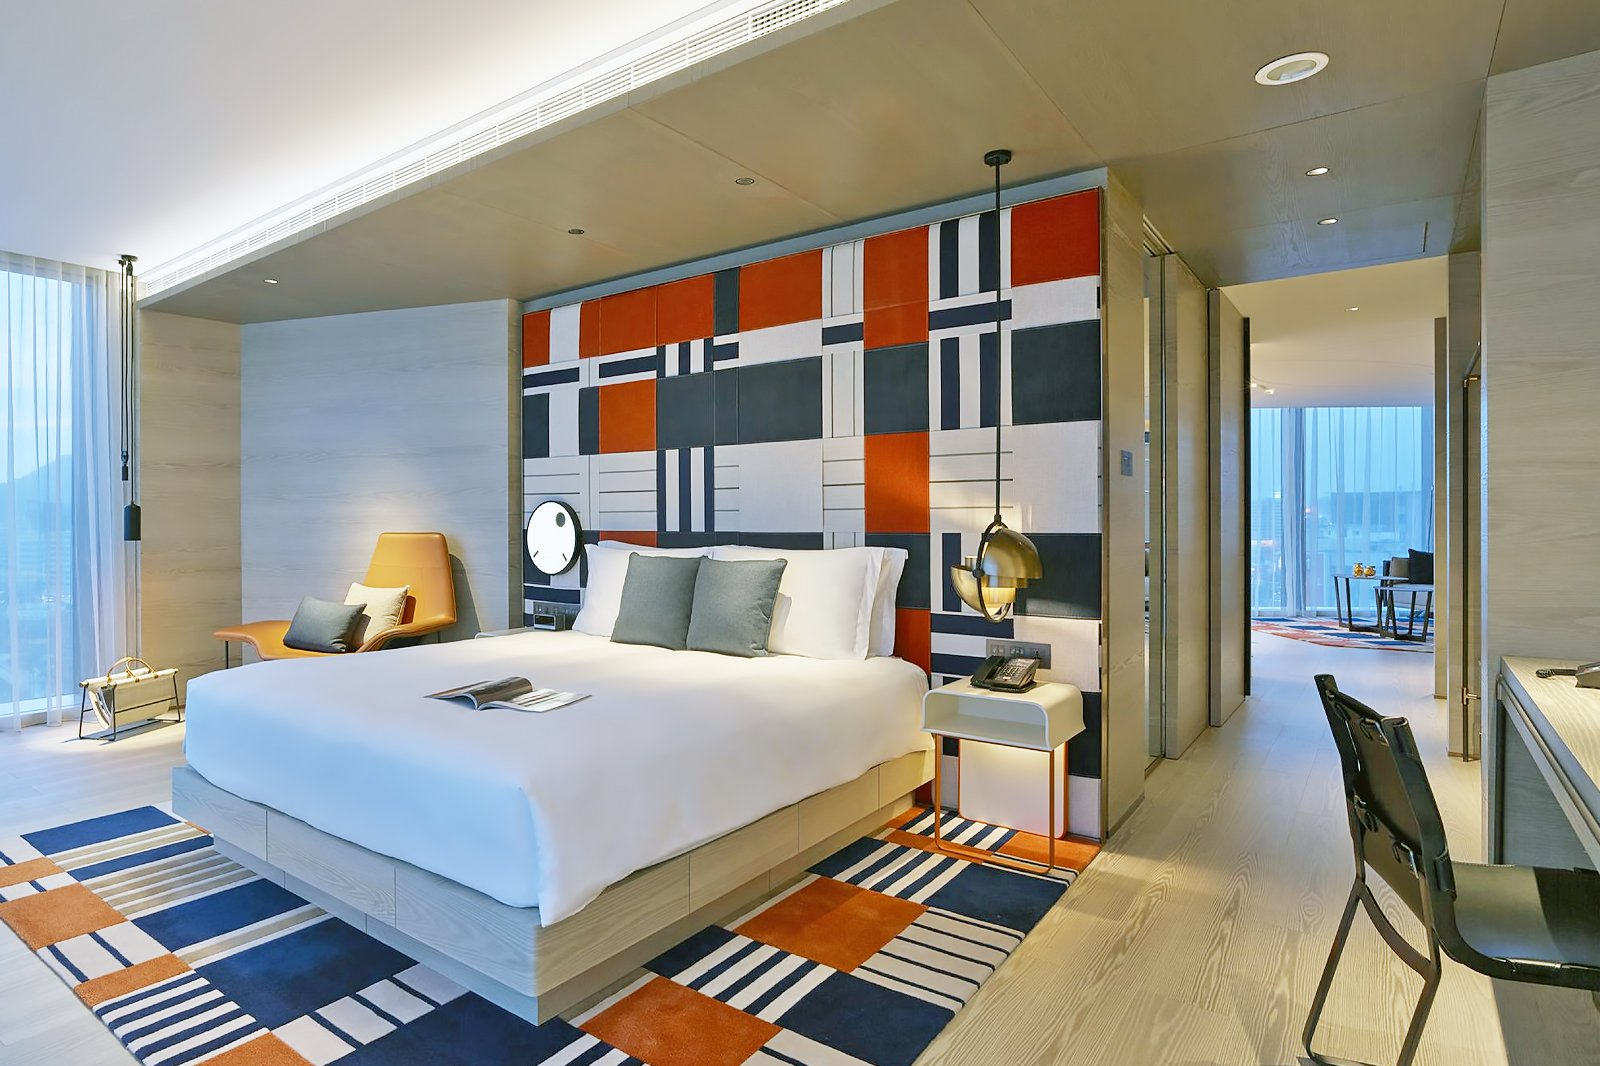 5 Best Luxury Hotels in Kaohsiung - Kaohsiung